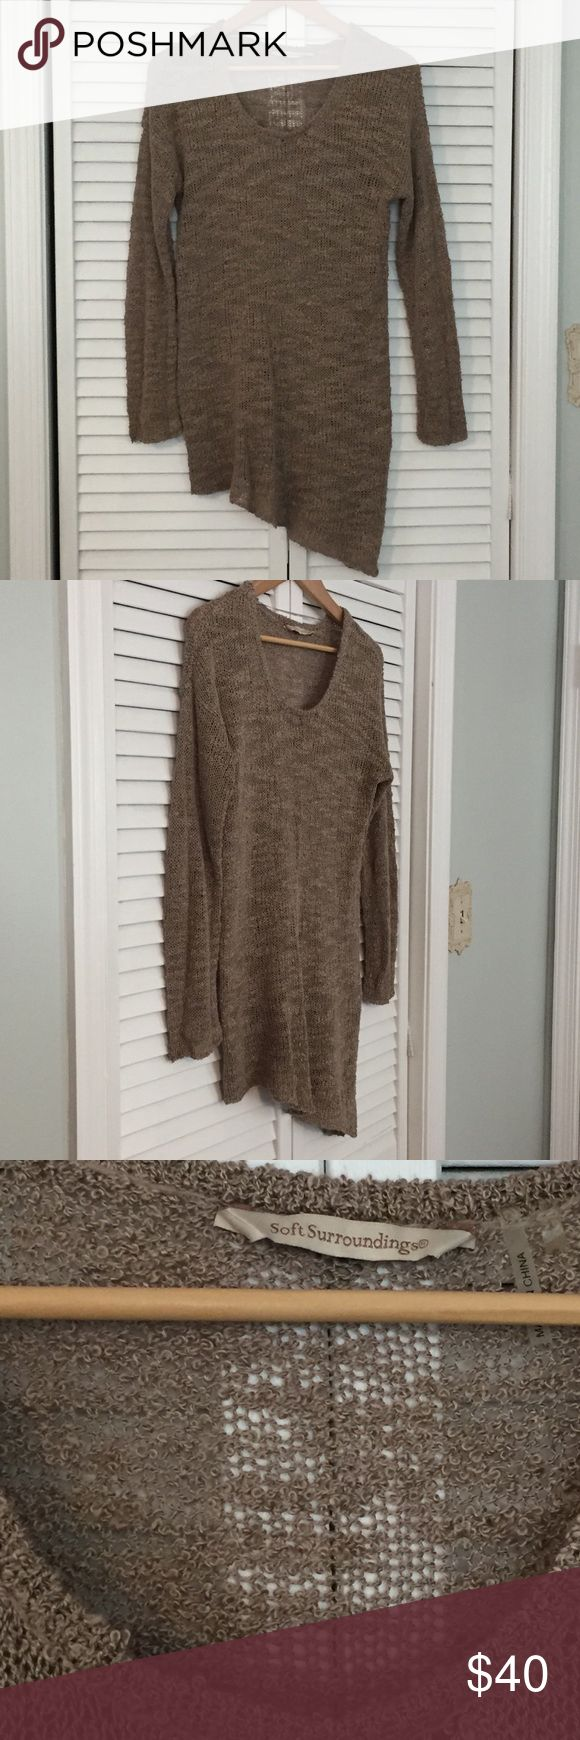 Soft Surroundings asymmetrical top Beautiful open knit-long sleeved top from Soft Surroundings. 100% acrylic. Size Small. Asymmetrical bottom hem. I would suggest wearing a cami underneath due to the open knit style. I actually wore as a swim cover-so many options here! The neutral beige color makes this even more versatile! Soft Surroundings Tops Tees - Long Sleeve